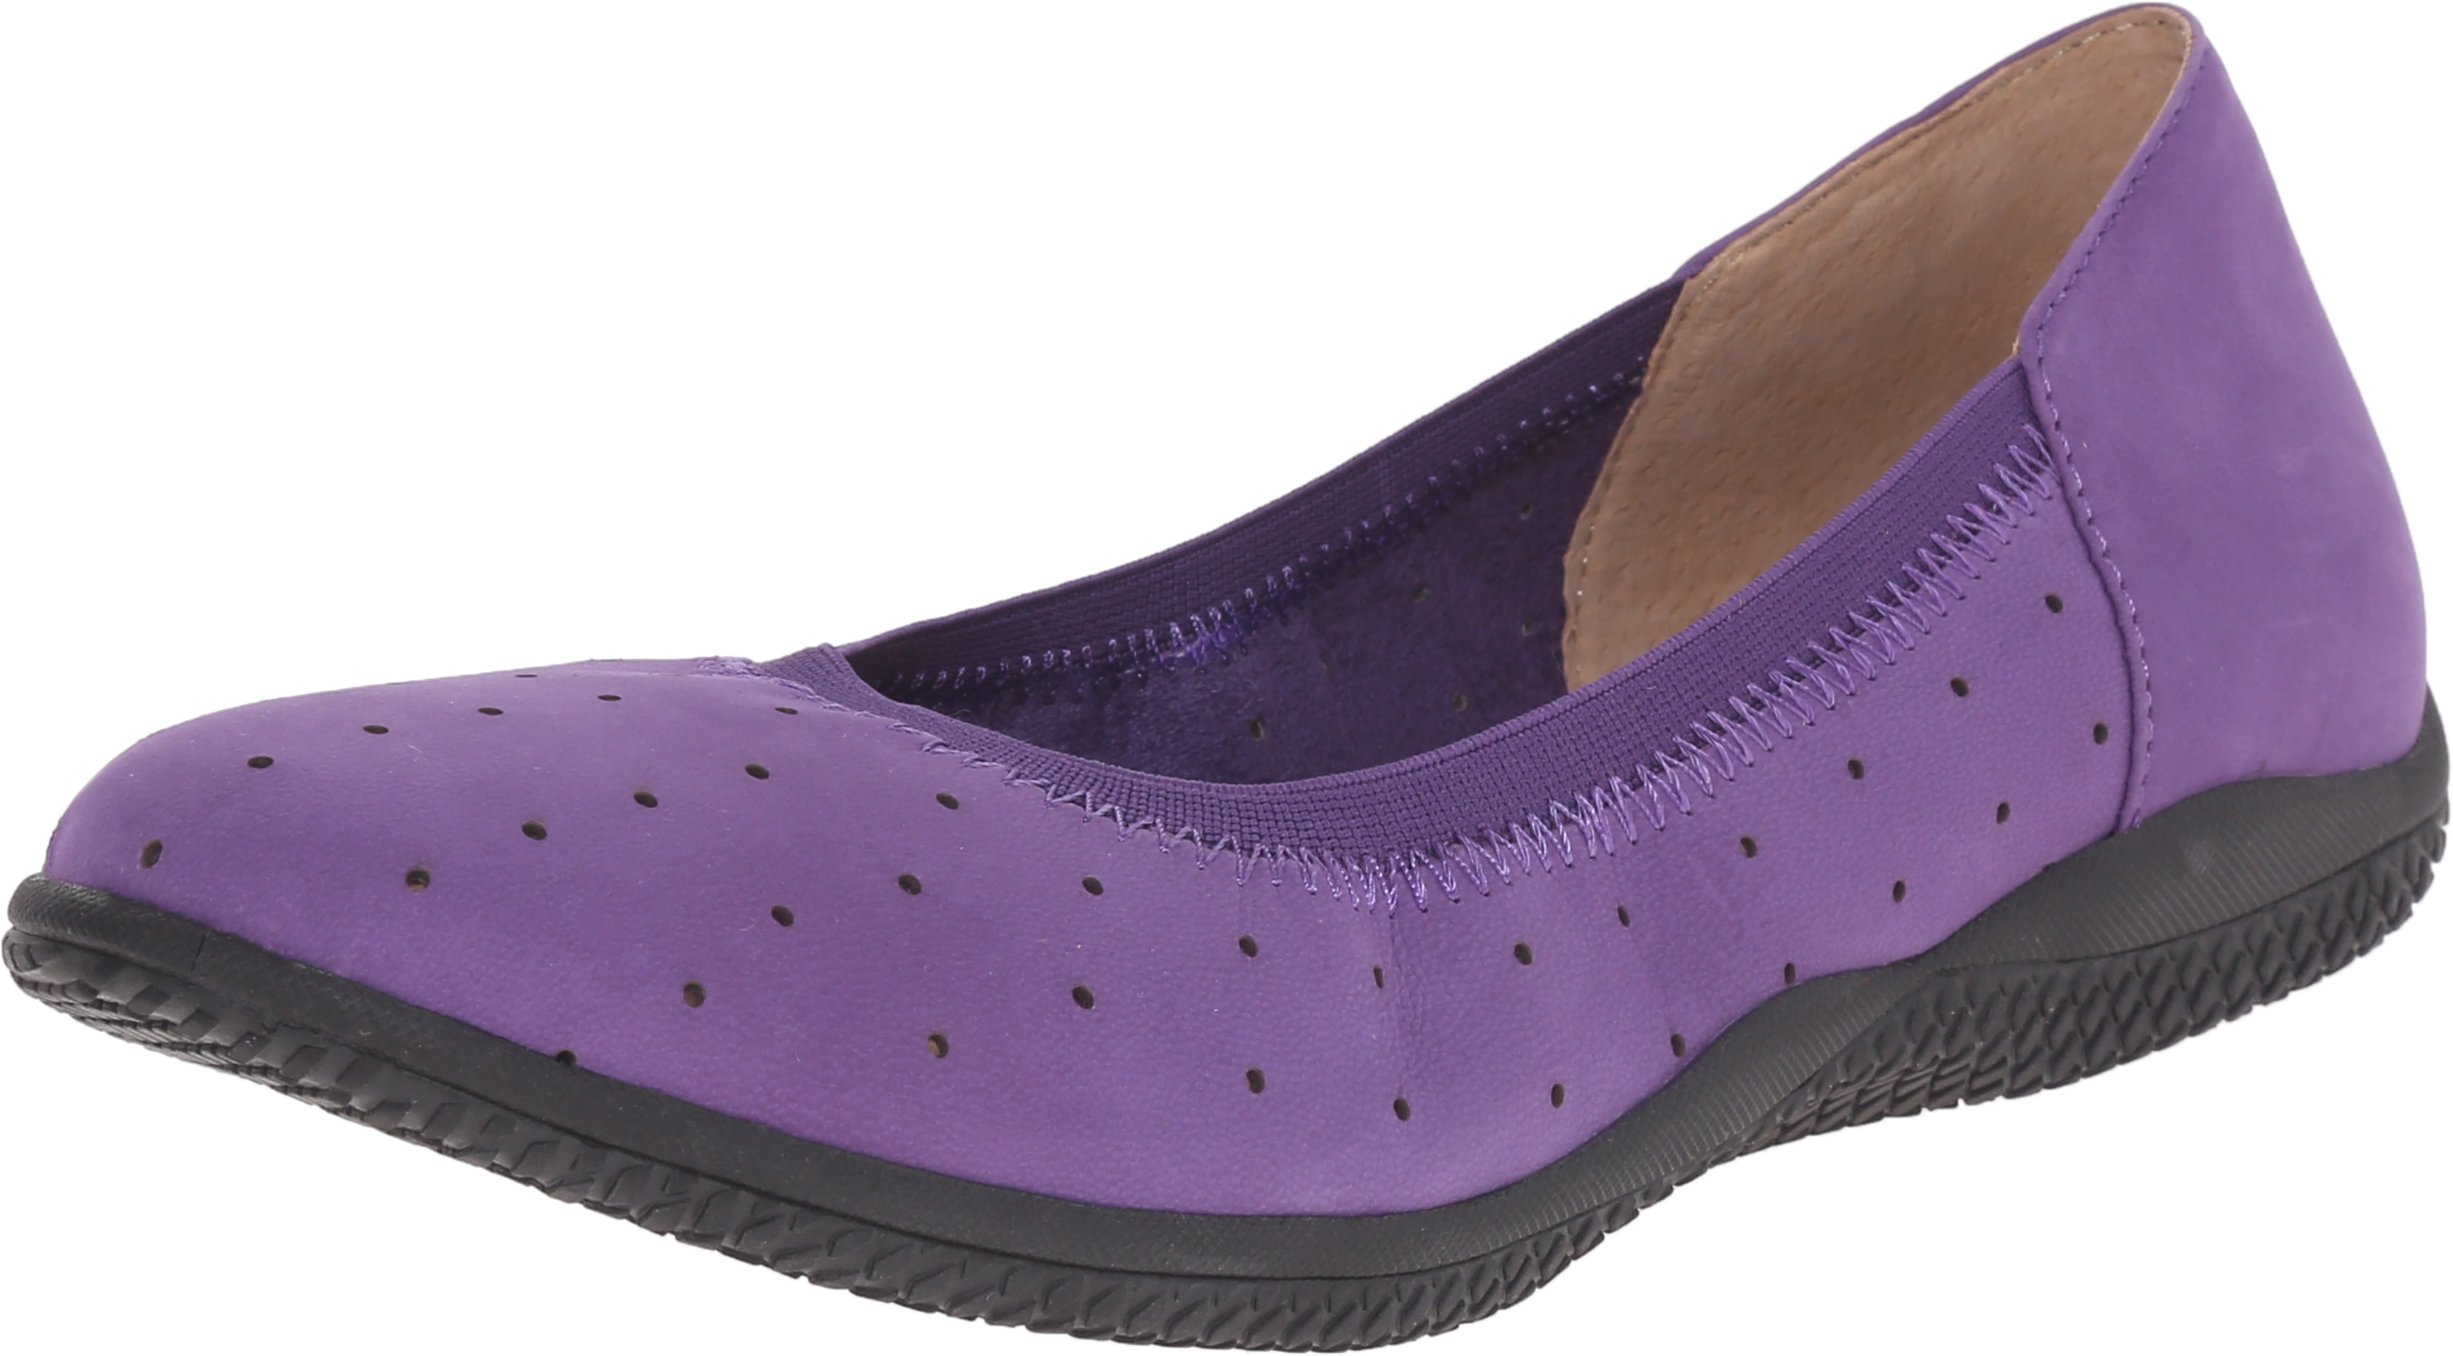 Softwalk Women's Hampshire Ballet Flat,Violet,10.5 W US